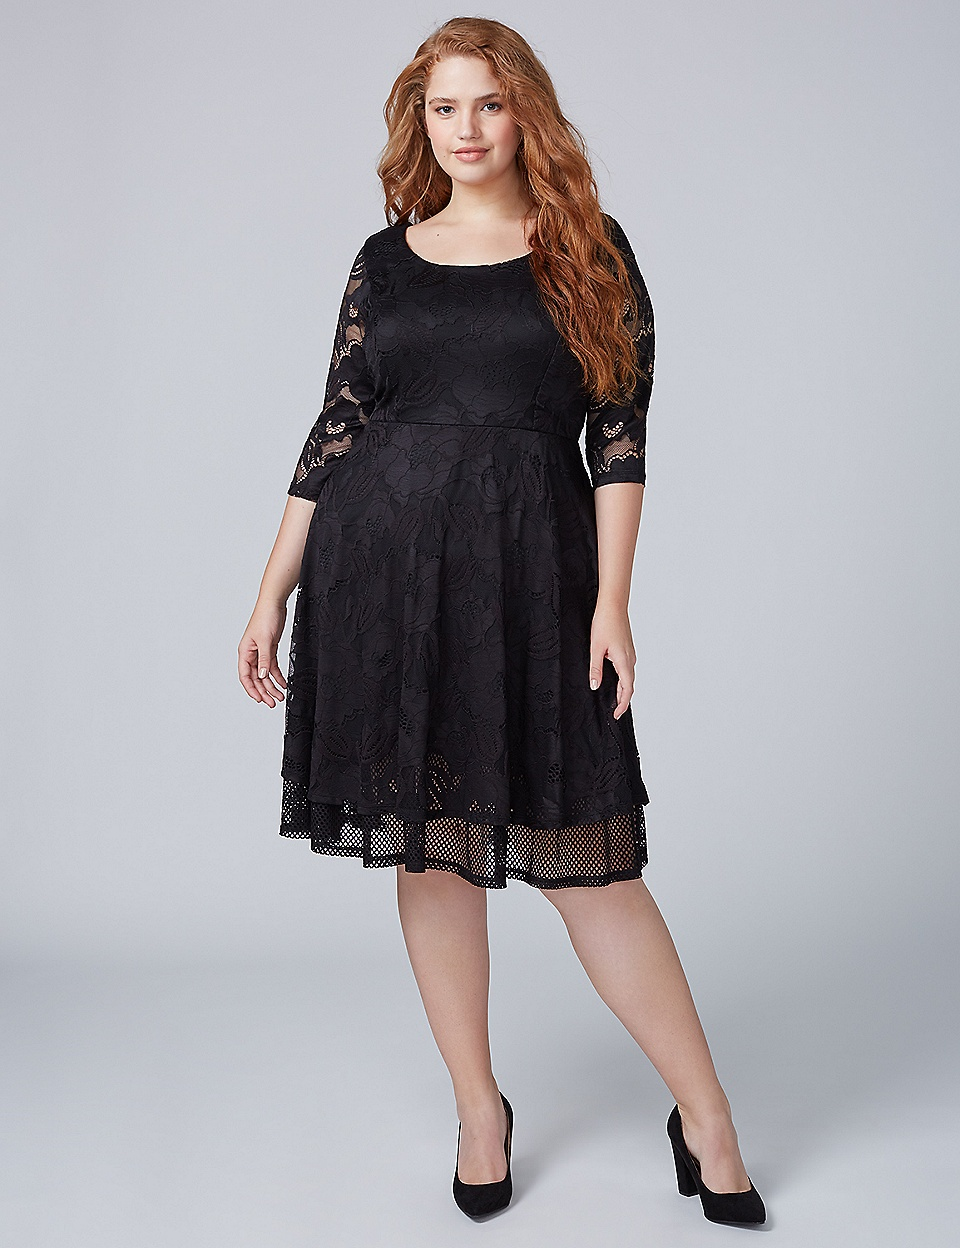 3/4 Sleeve Lace Fit & Flare Dress with Mesh | Lane Bryant